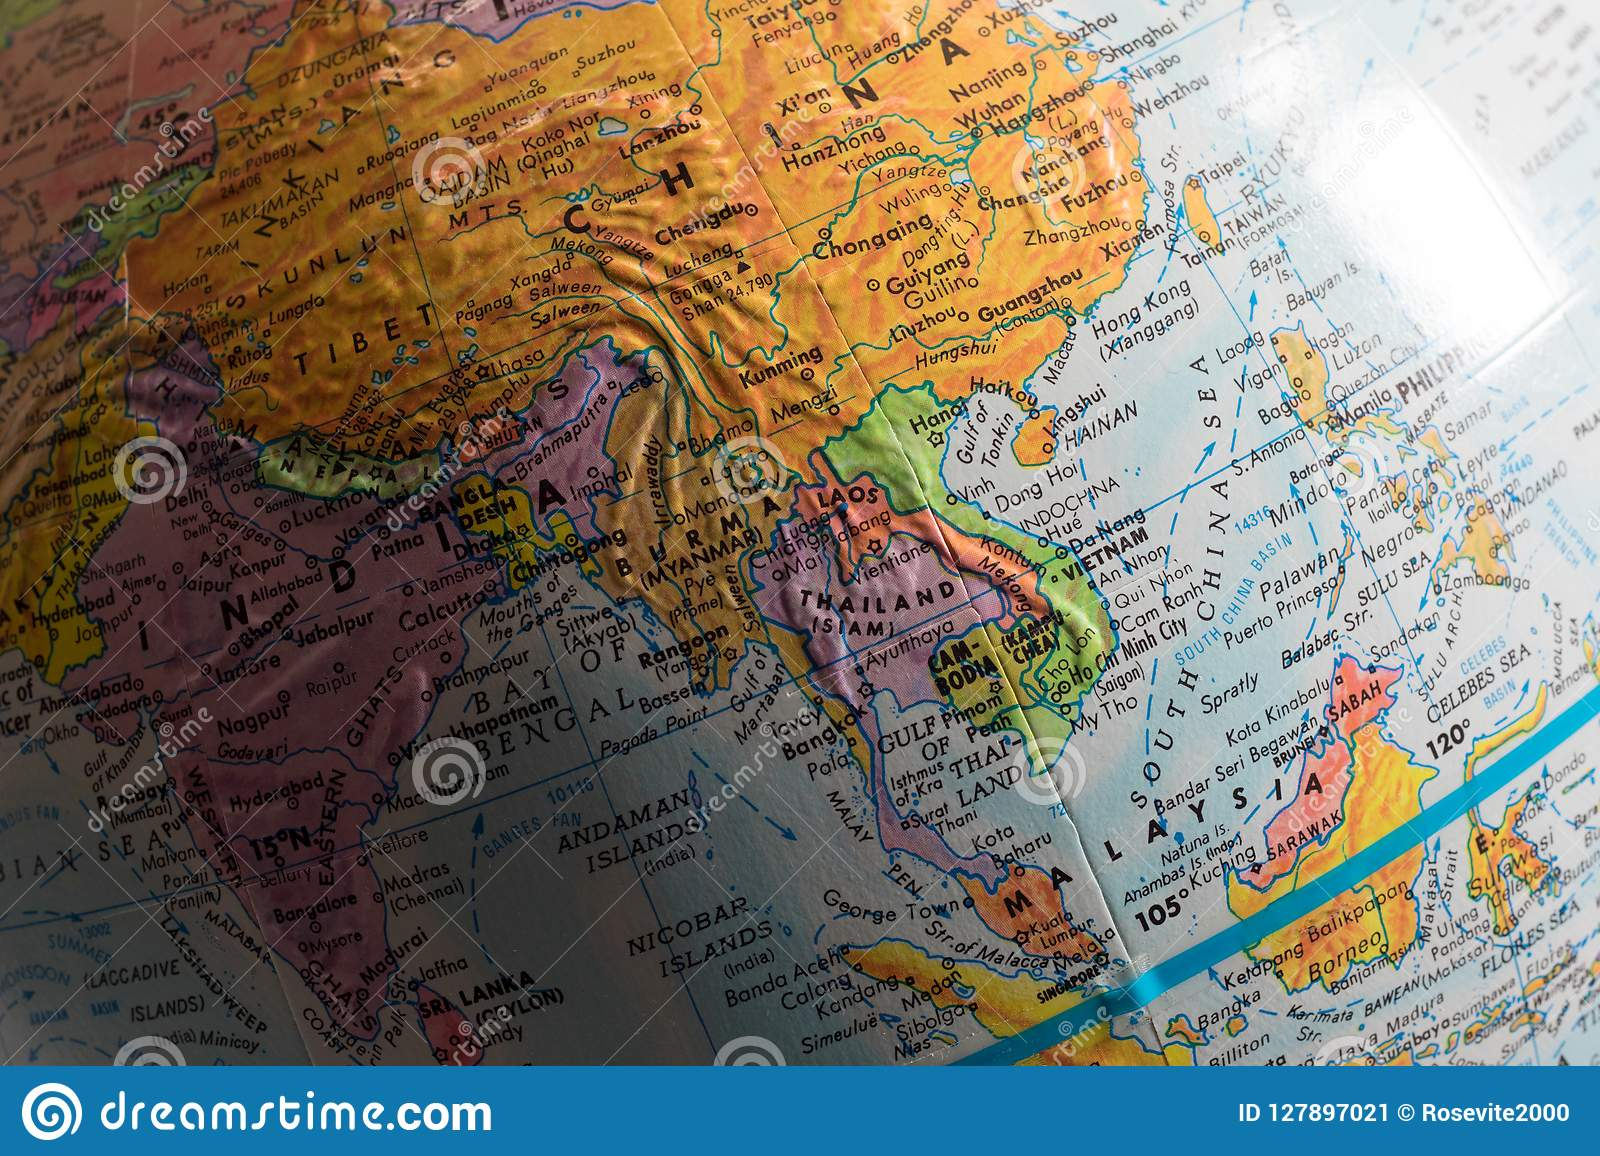 Download Map Of Asia.Map Of Asia Stock Image Image Of Africa Global Chart 127897021